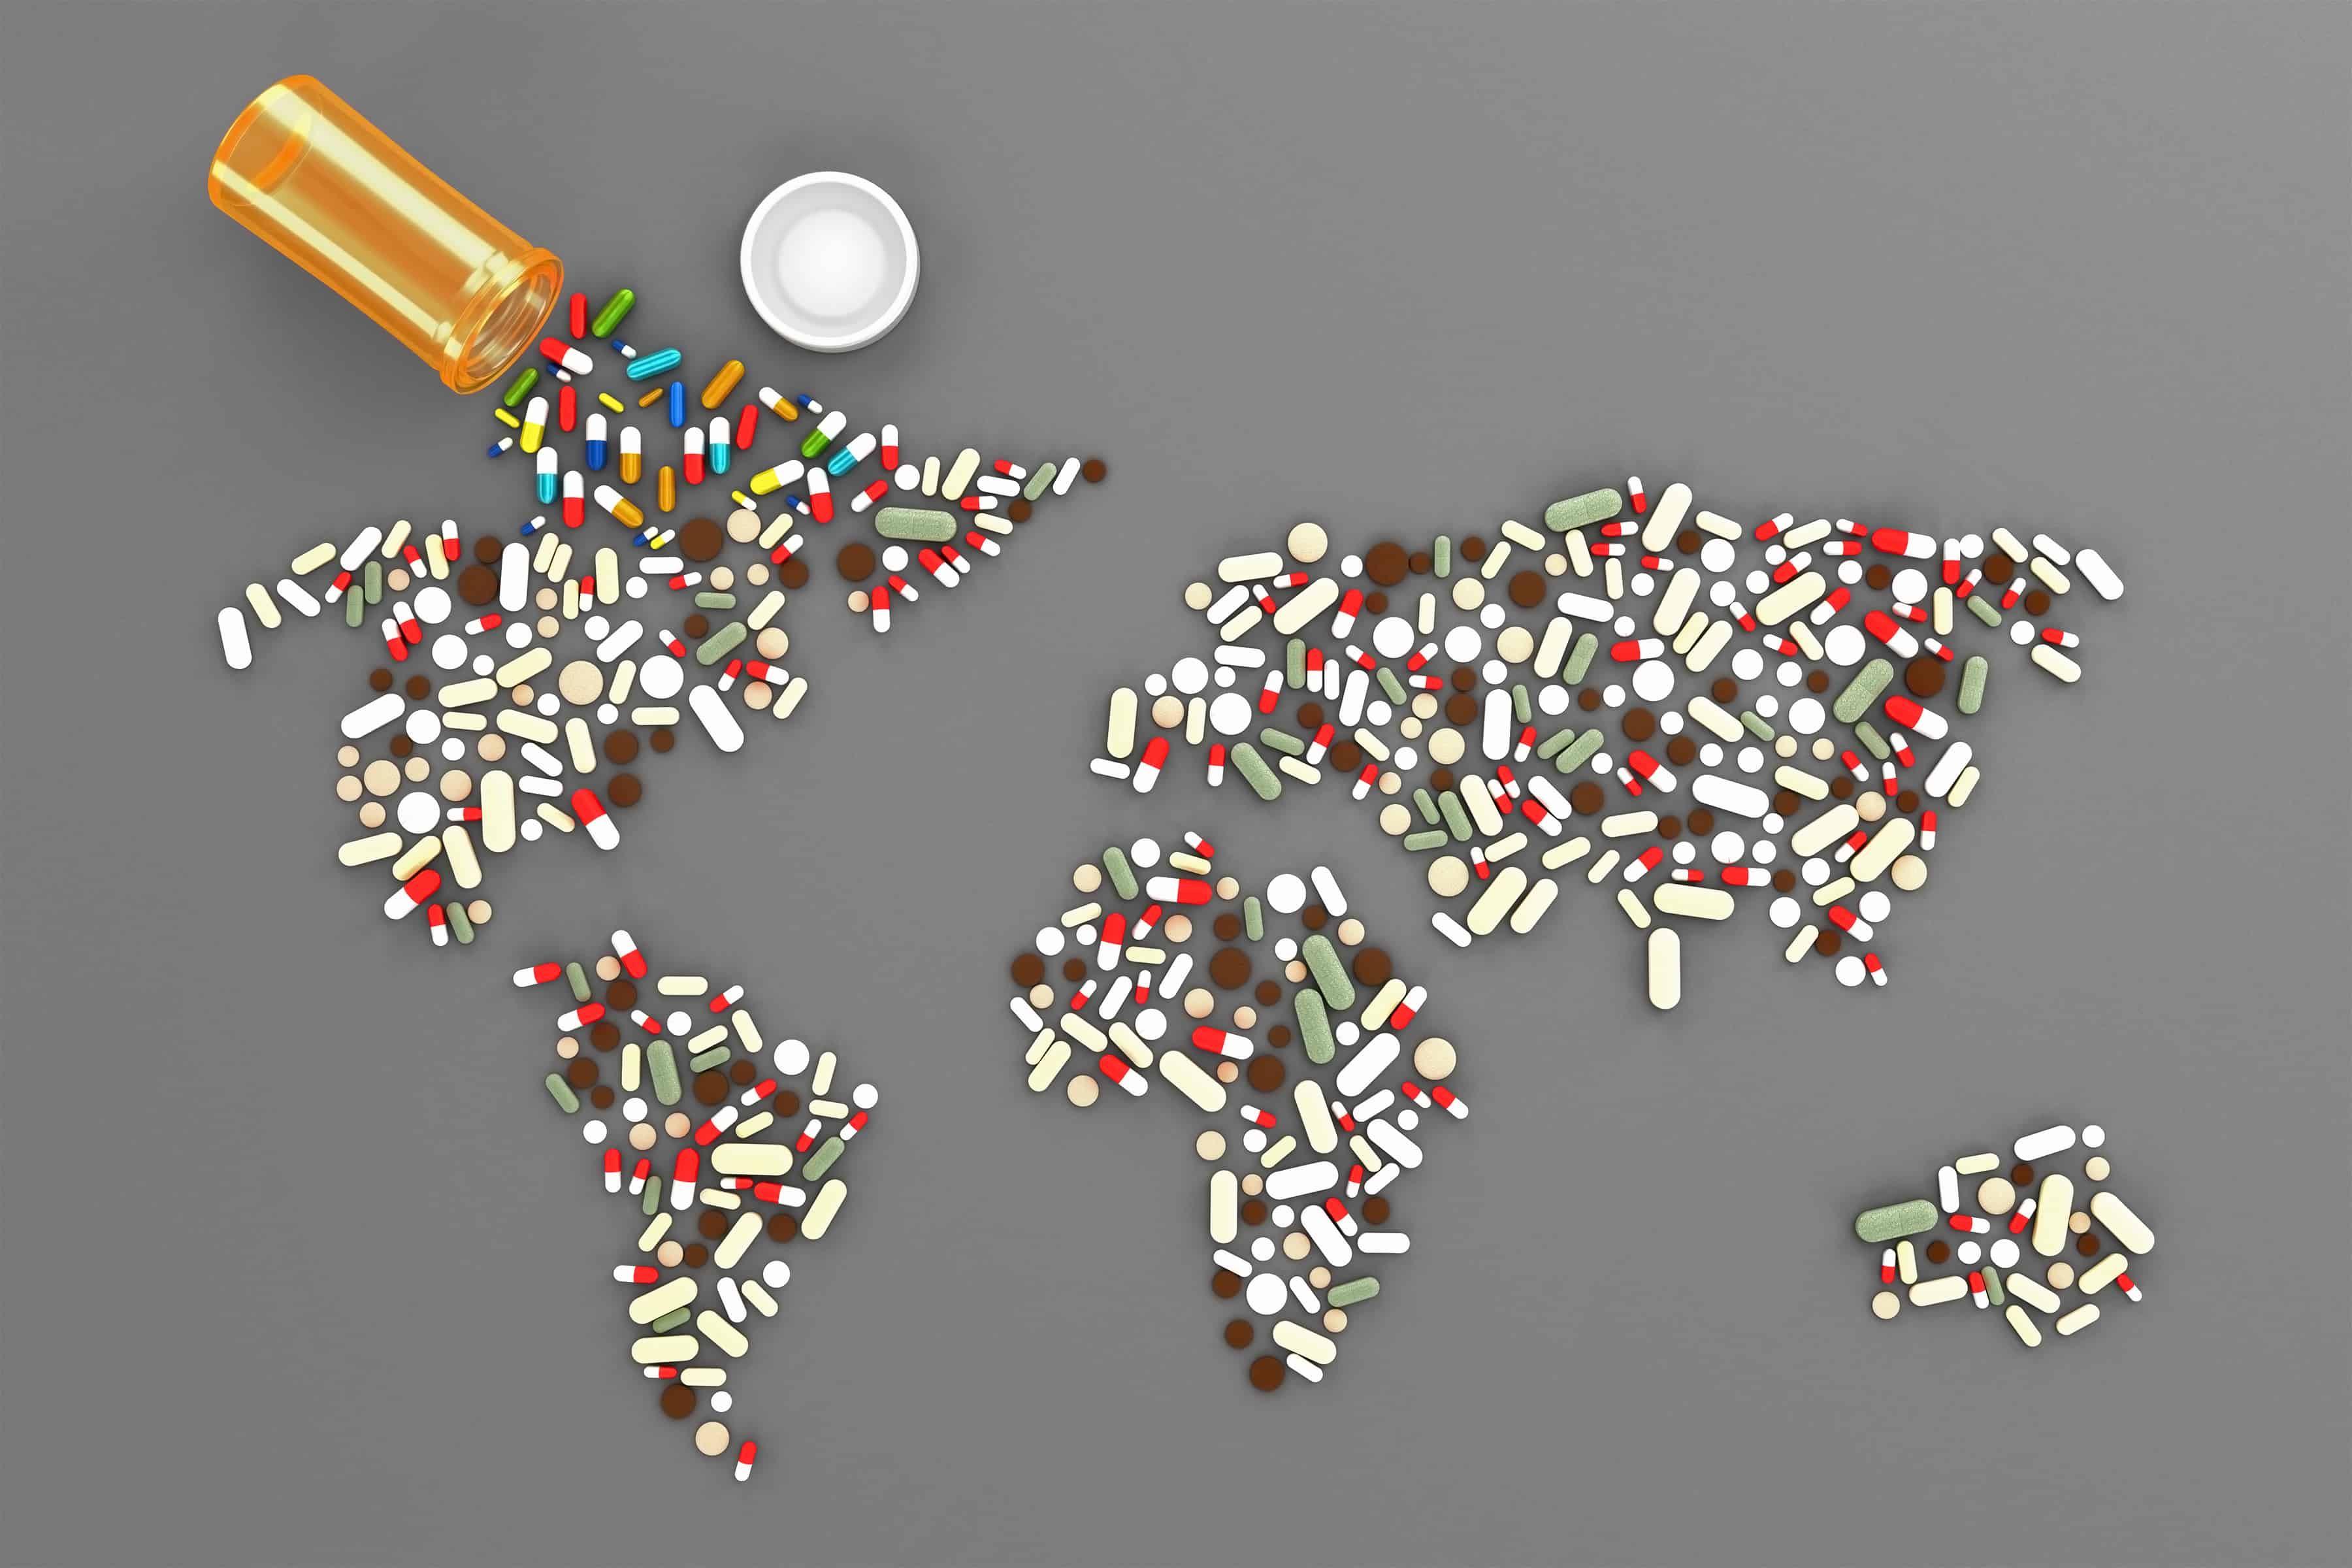 Weekly Digest: Increasing global consumption of Watch antibiotics reflects stewardship challenges; Hospital masking policy associated with reduced rates of COVID-19 in healthcare workers; Antibiotics recommended for crop production at high rates in Southeast Asia.